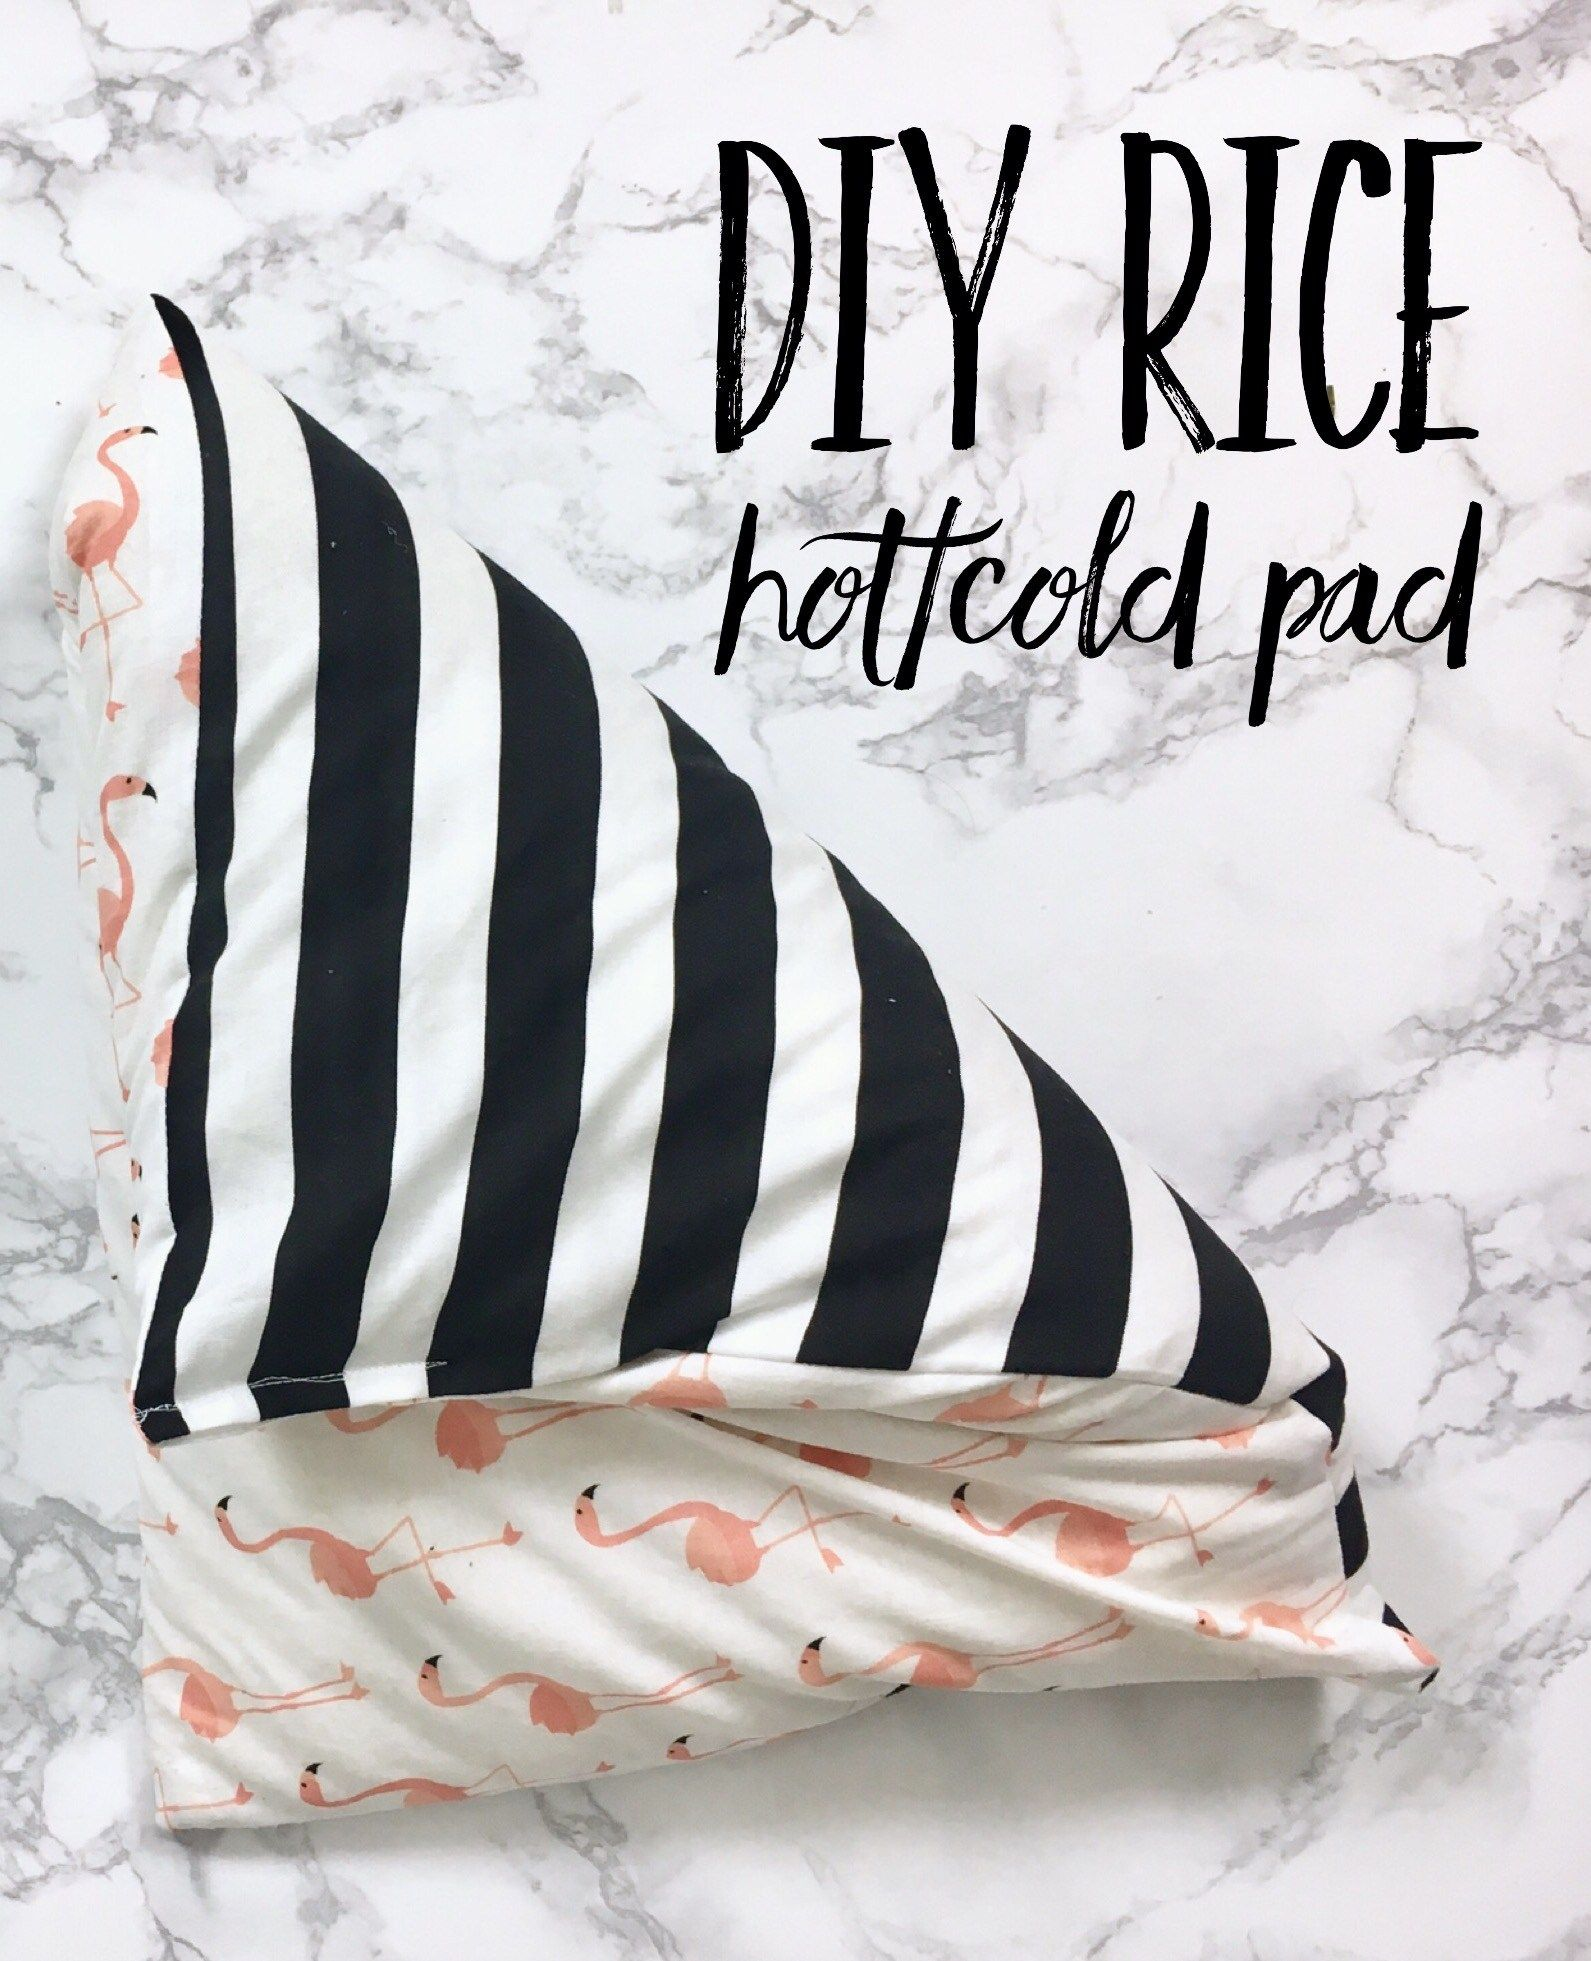 Diy Rice Hotcold Pad A Diy Group Board Pinterest Rice Heating